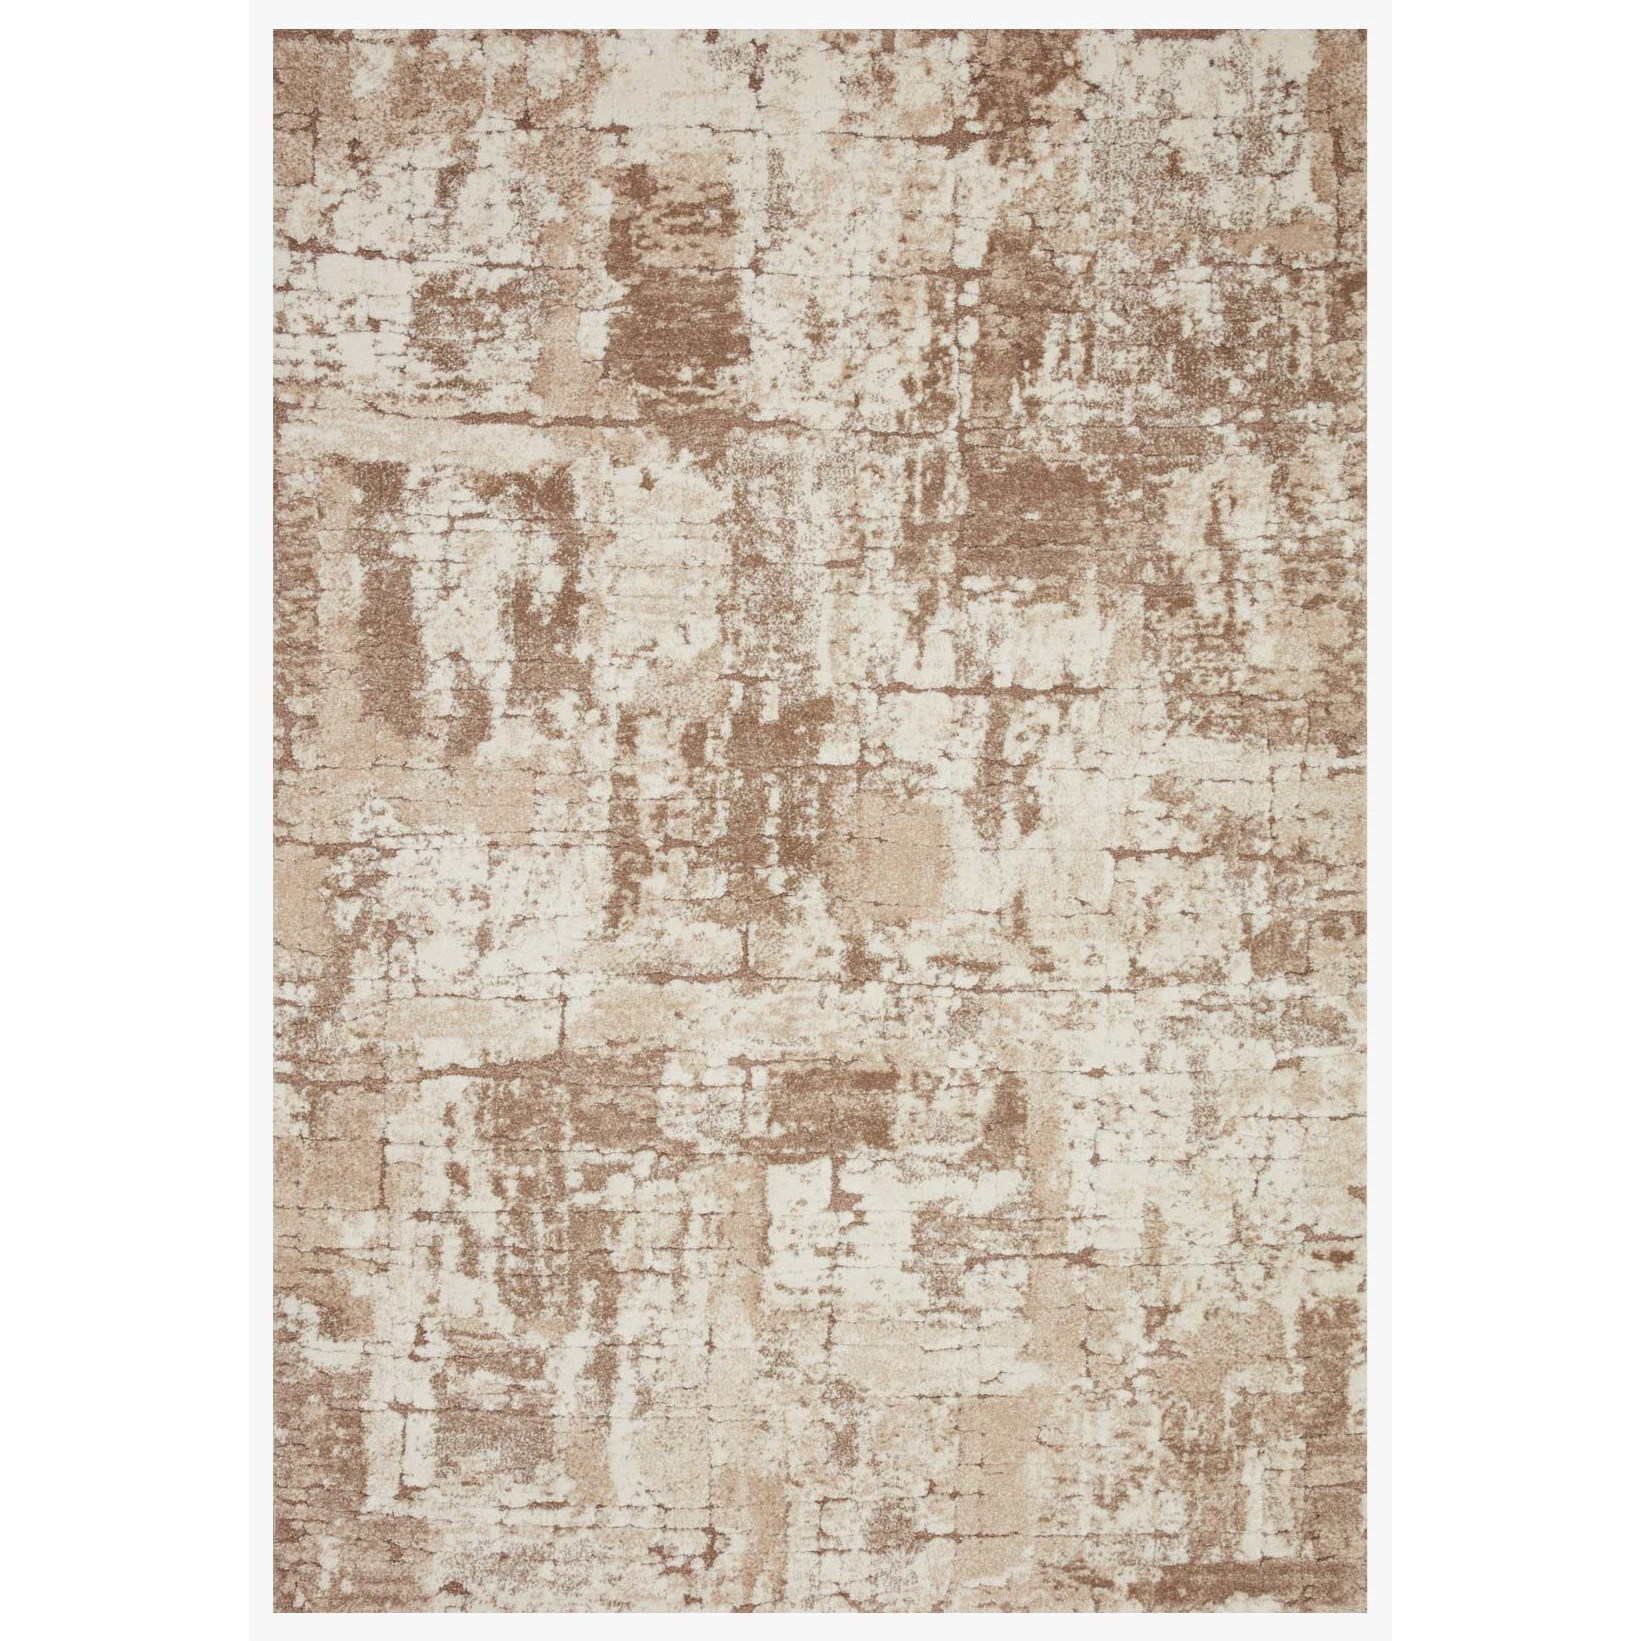 """Theory 2'7"""" x 10'10"""" Beige / Taupe Rug by Loloi Rugs at Virginia Furniture Market"""